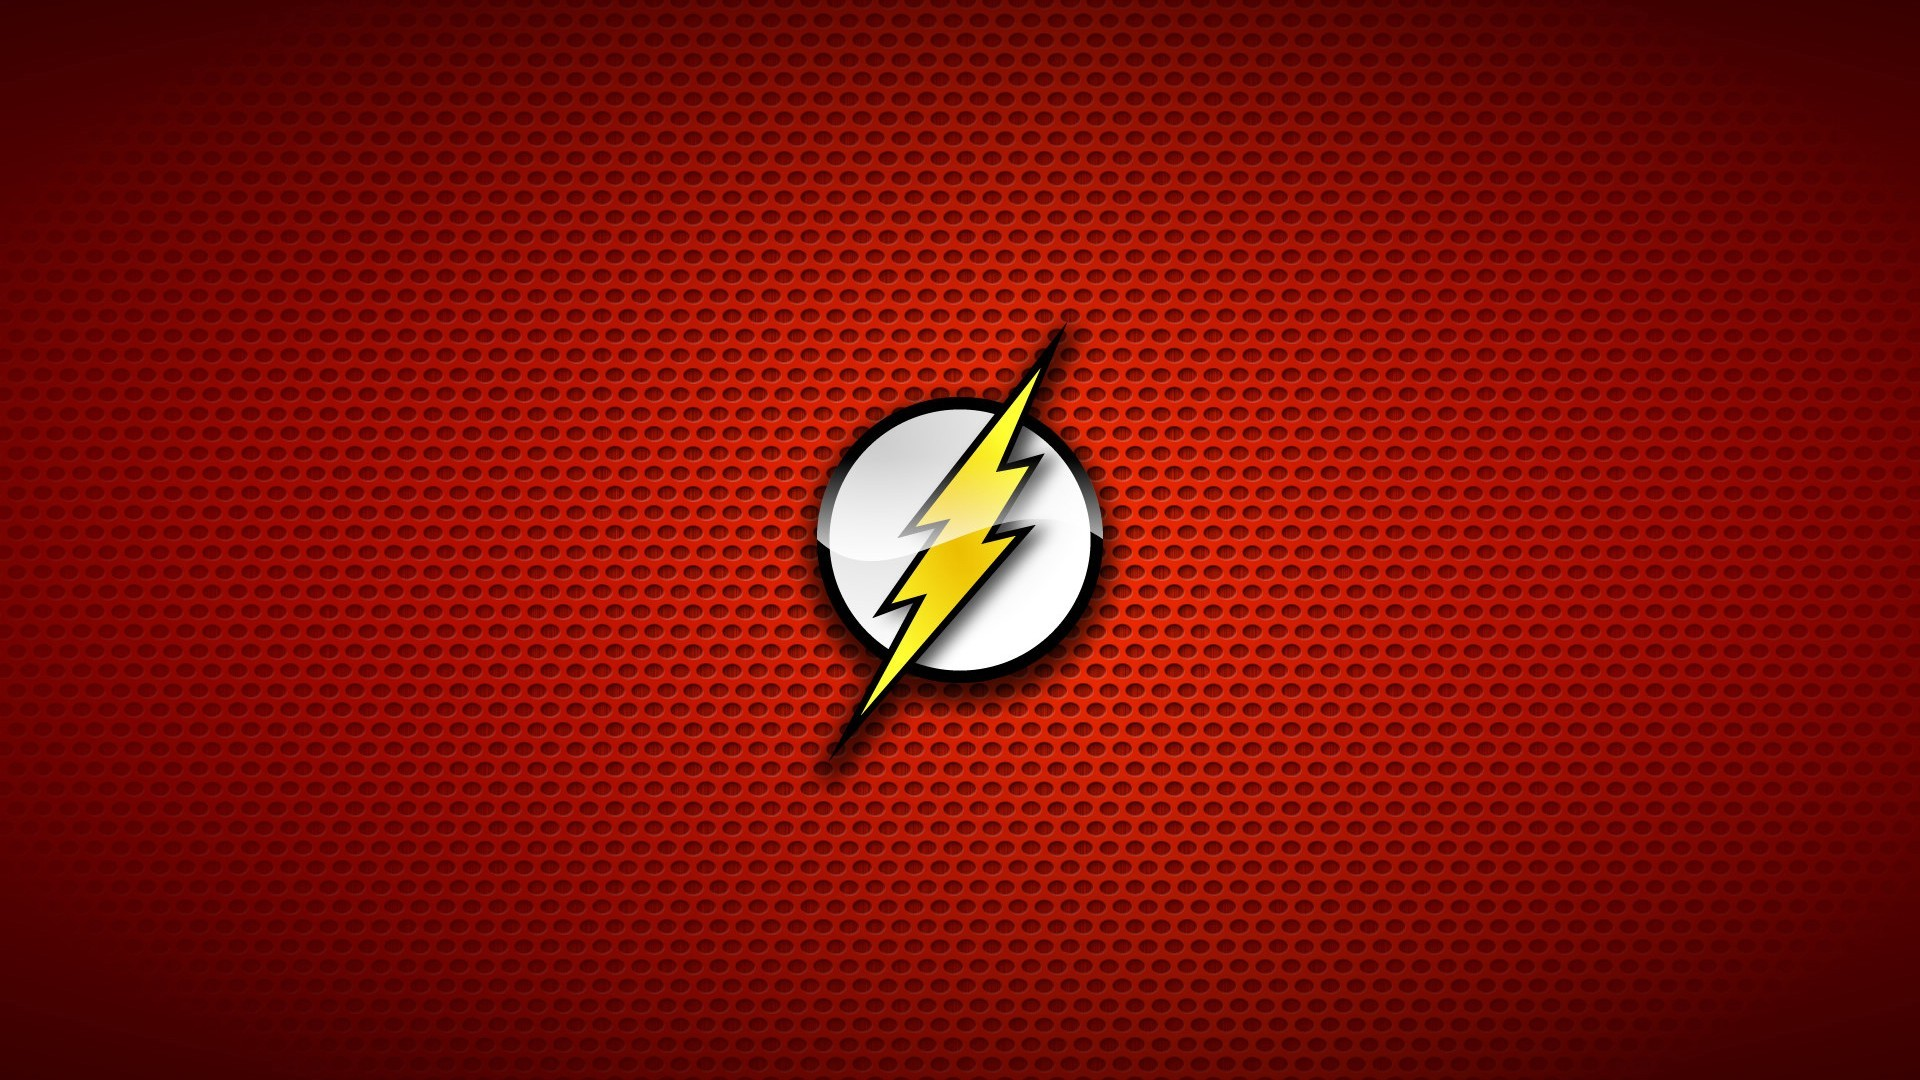 Download The Flash 1920x1080 Wallpaper 1920x1080